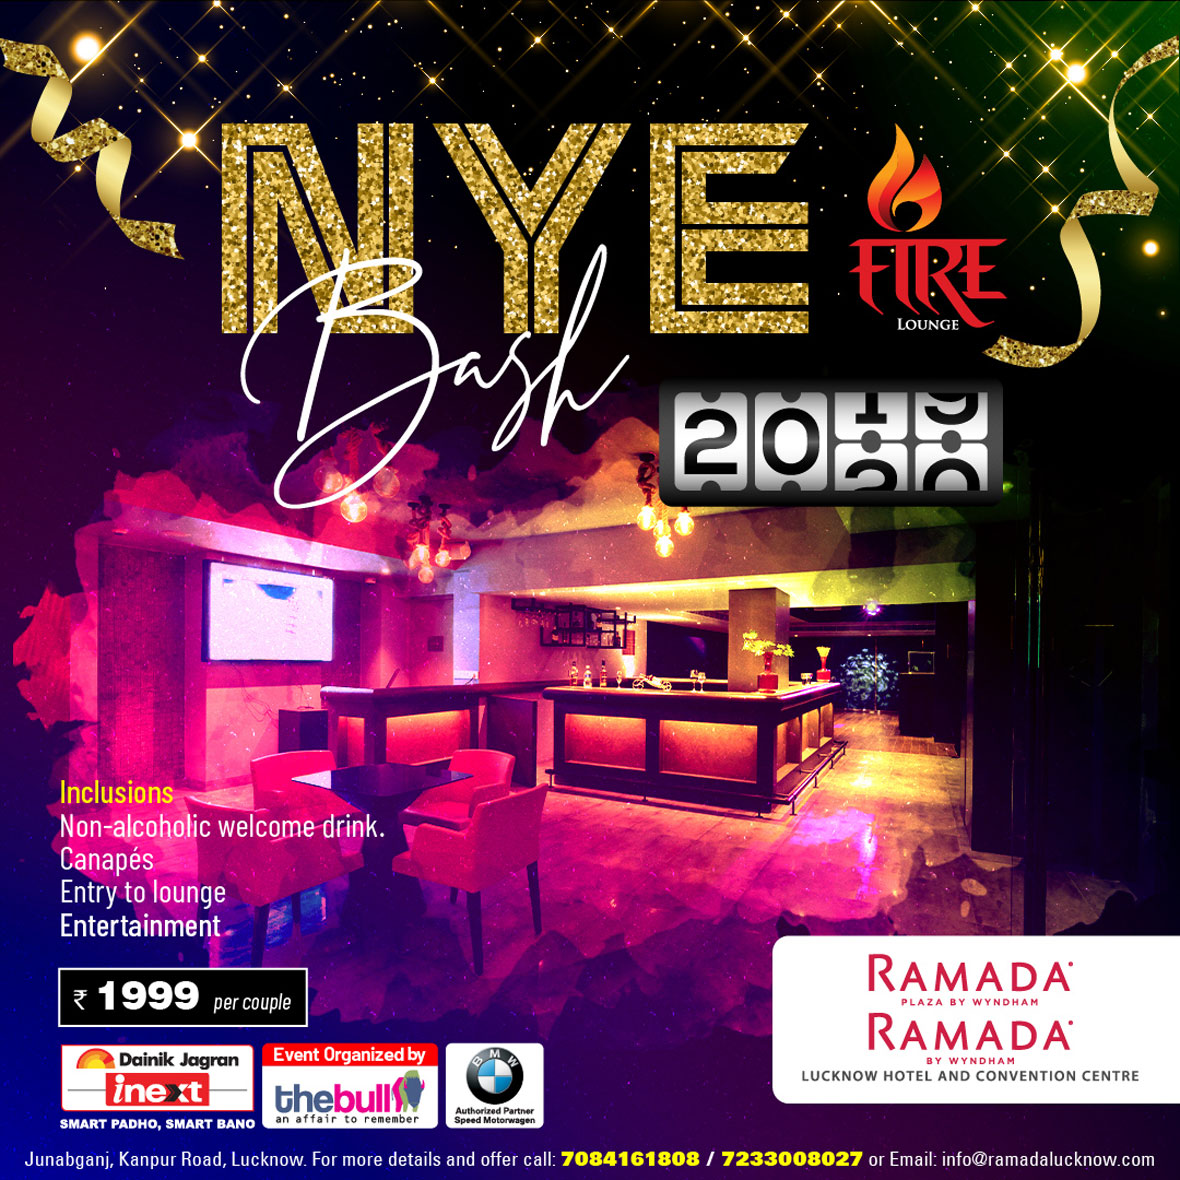 Fire-Lounge-Discotheque-Lucknow-New-year-Party-2020